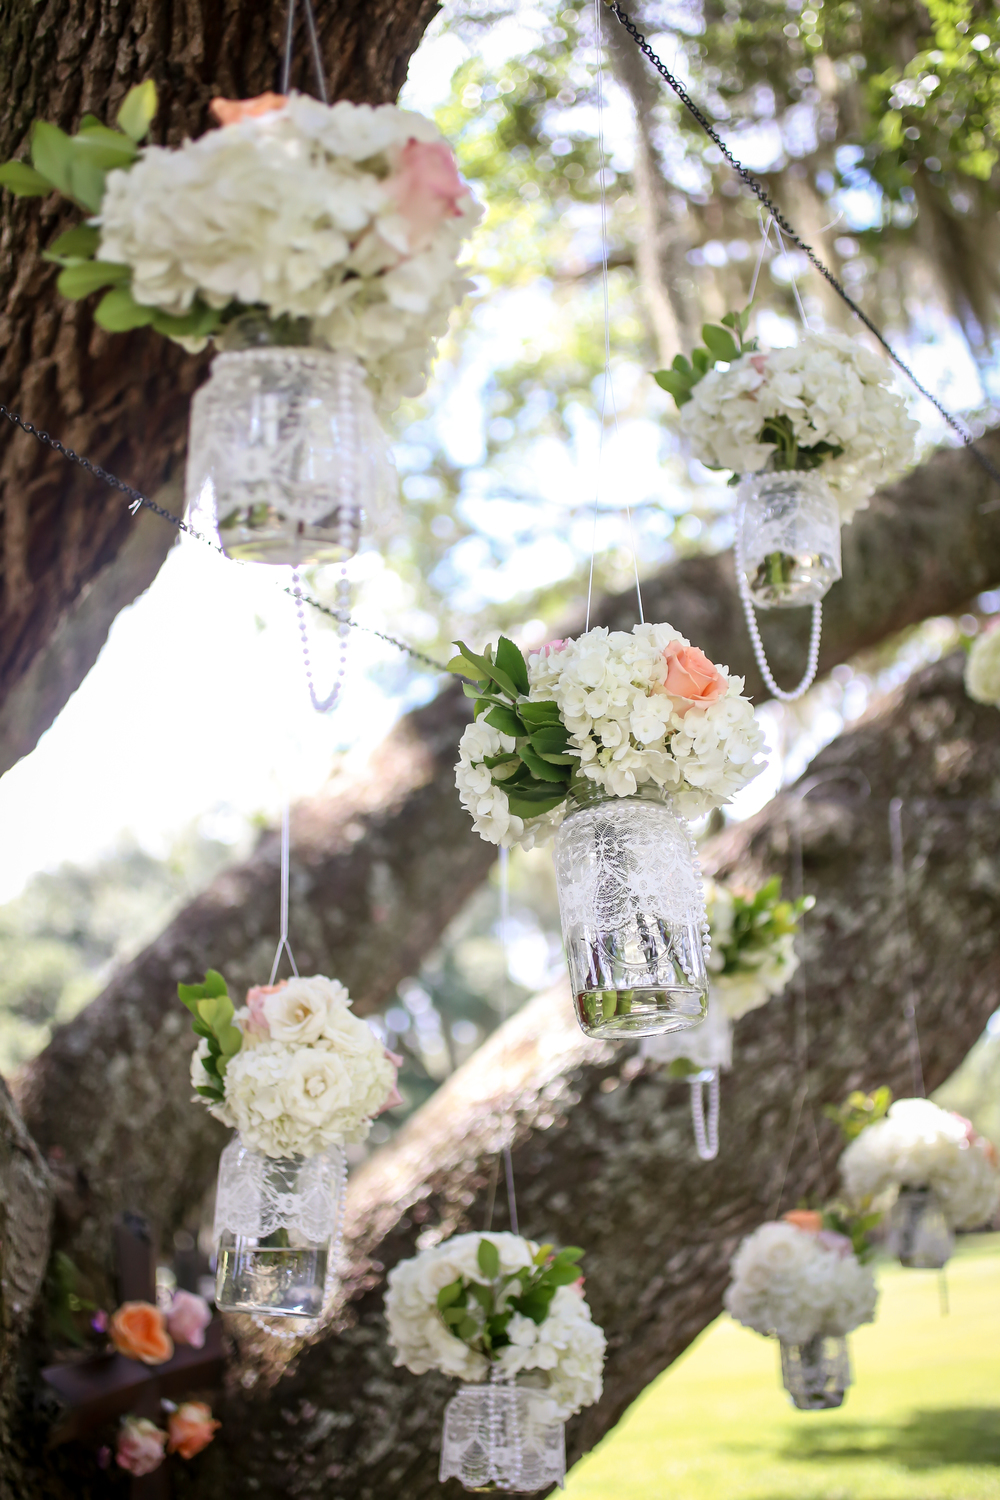 Lace-wrapped mason jars featured strands of pearls dripping from clusters of hydrangea and roses